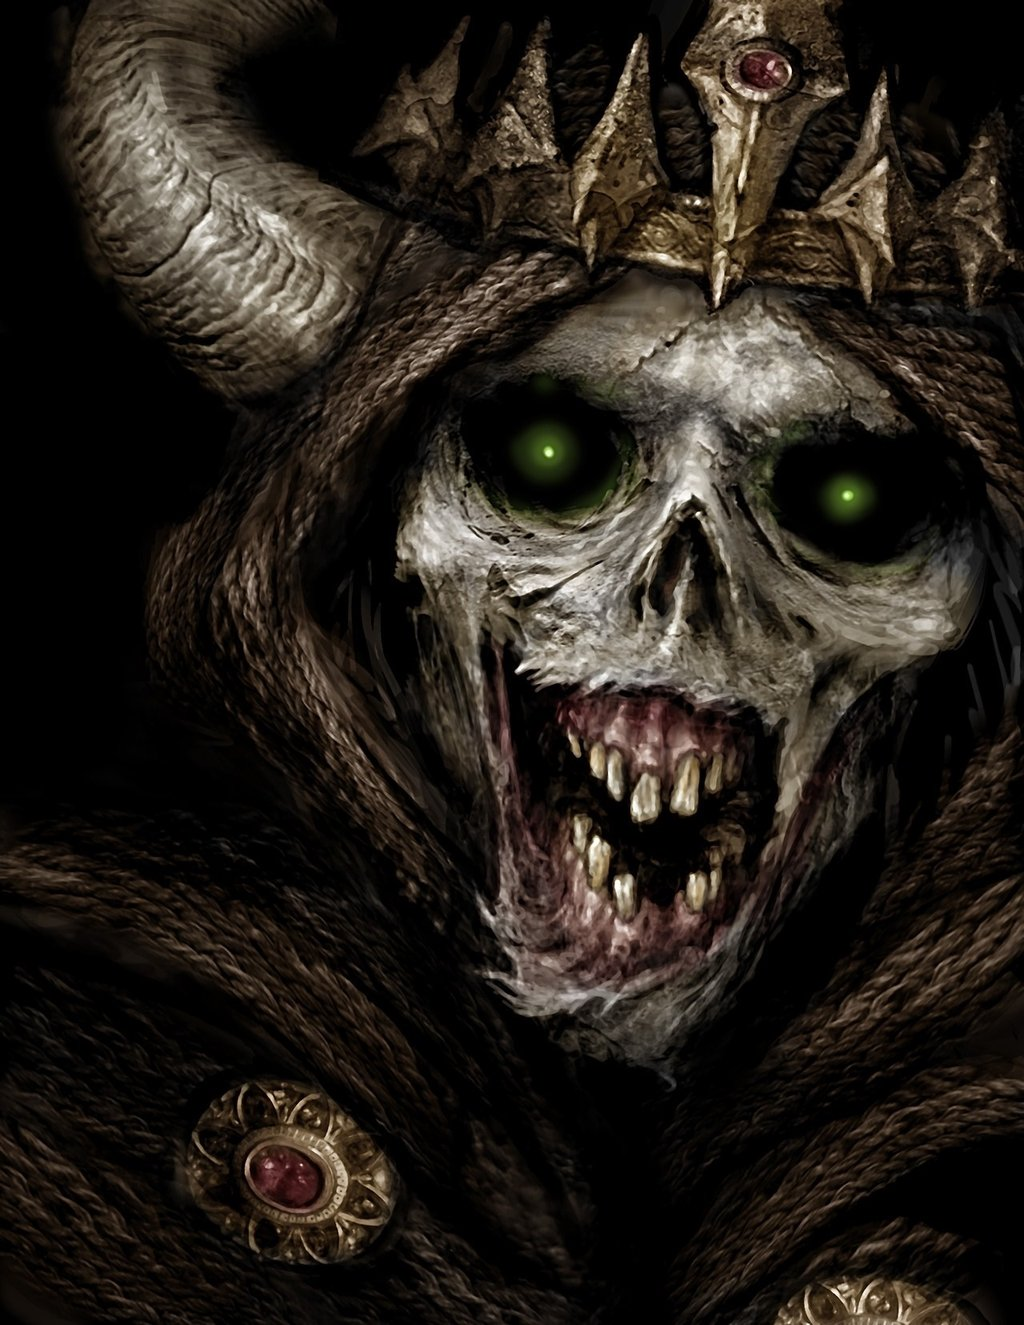 the_lich_by_sbwomack-d5vy1dl.jpg